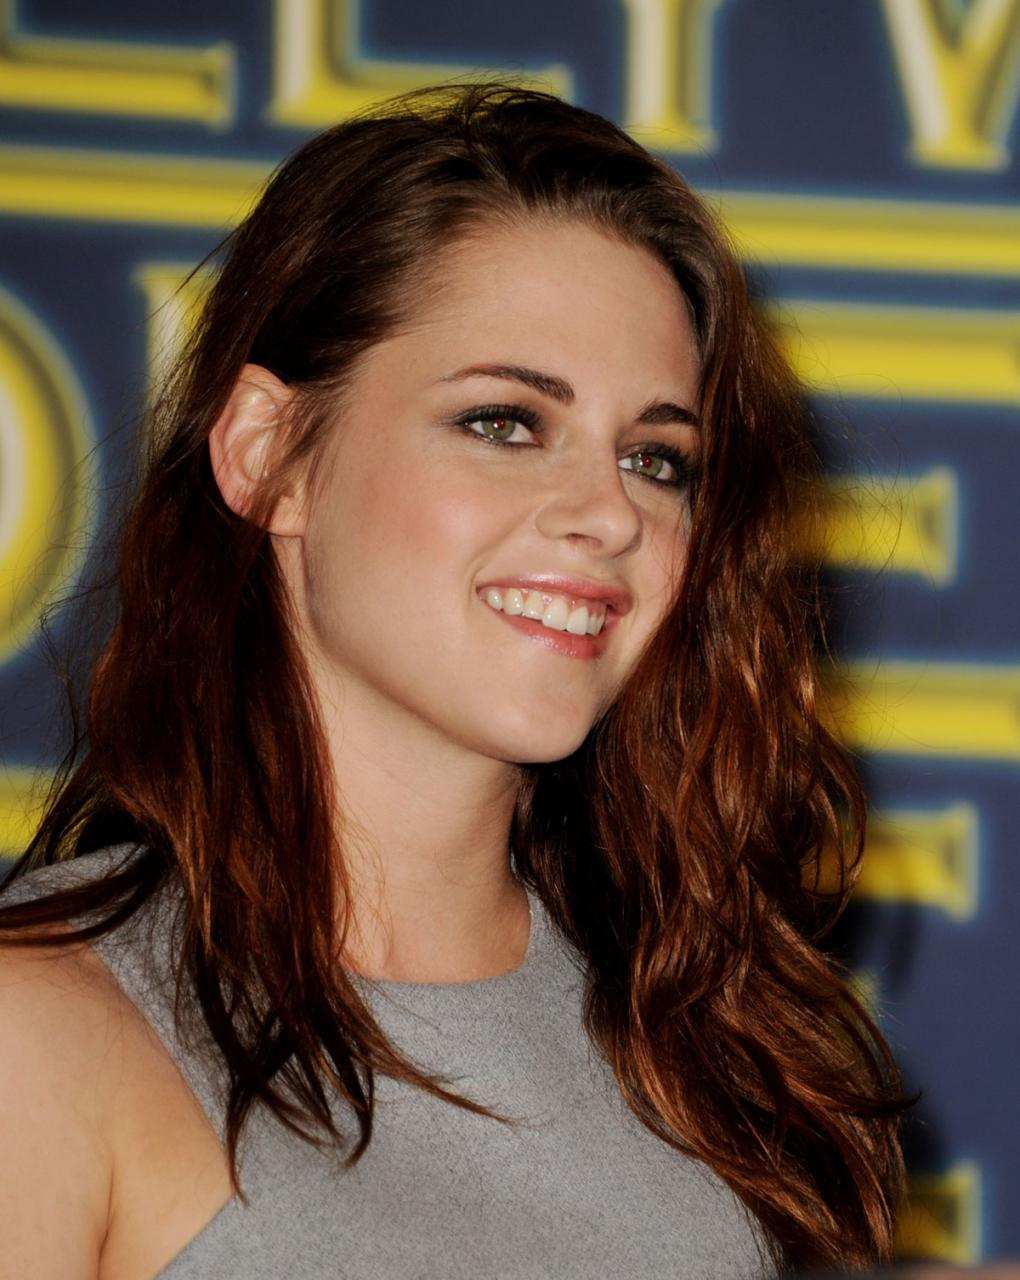 http://www.arabicollection.com/wp-content/uploads/2013/04/KRISTEN-STEWART-at-Cecil-B.-Demille-Award-Presentation-in-Beverly-Hills-6.jpg